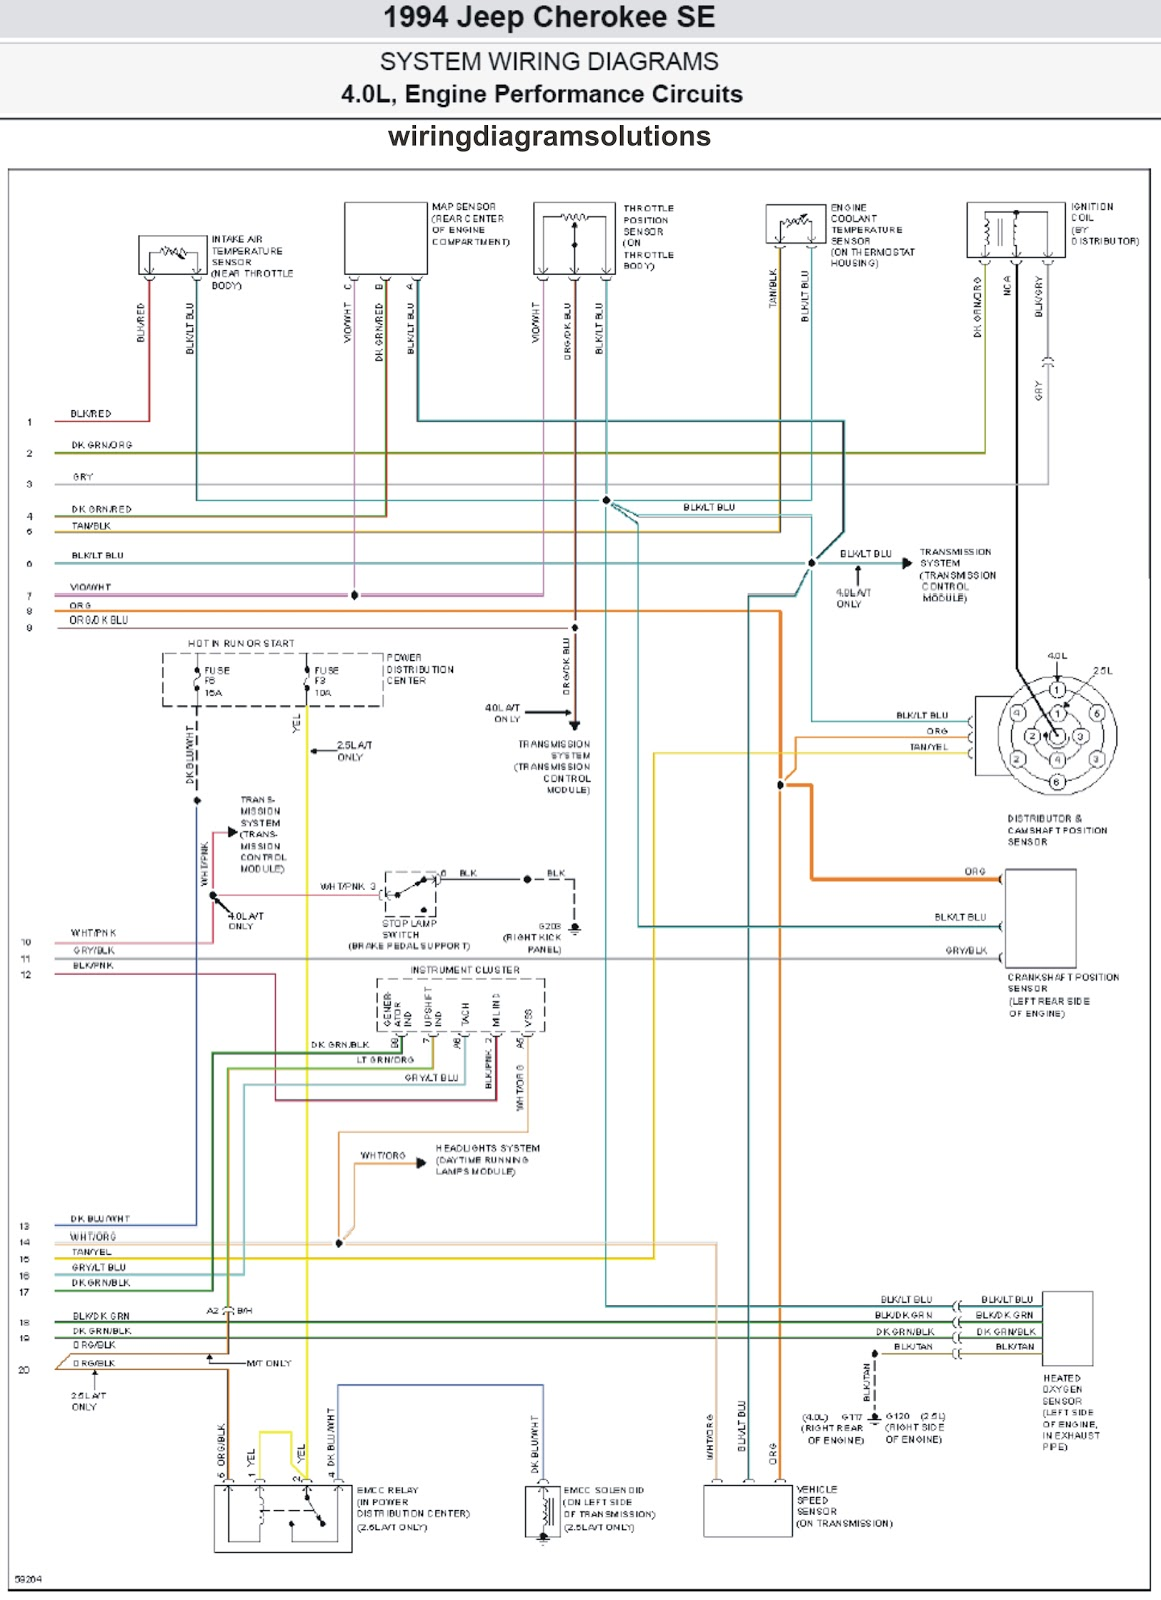 1994+Jeep+Cherokee+SE_2?resize=665%2C916 2001 kia sephia radio wiring diagram wiring diagram 2001 Jeep Grand Cherokee Stereo Wiring at gsmportal.co